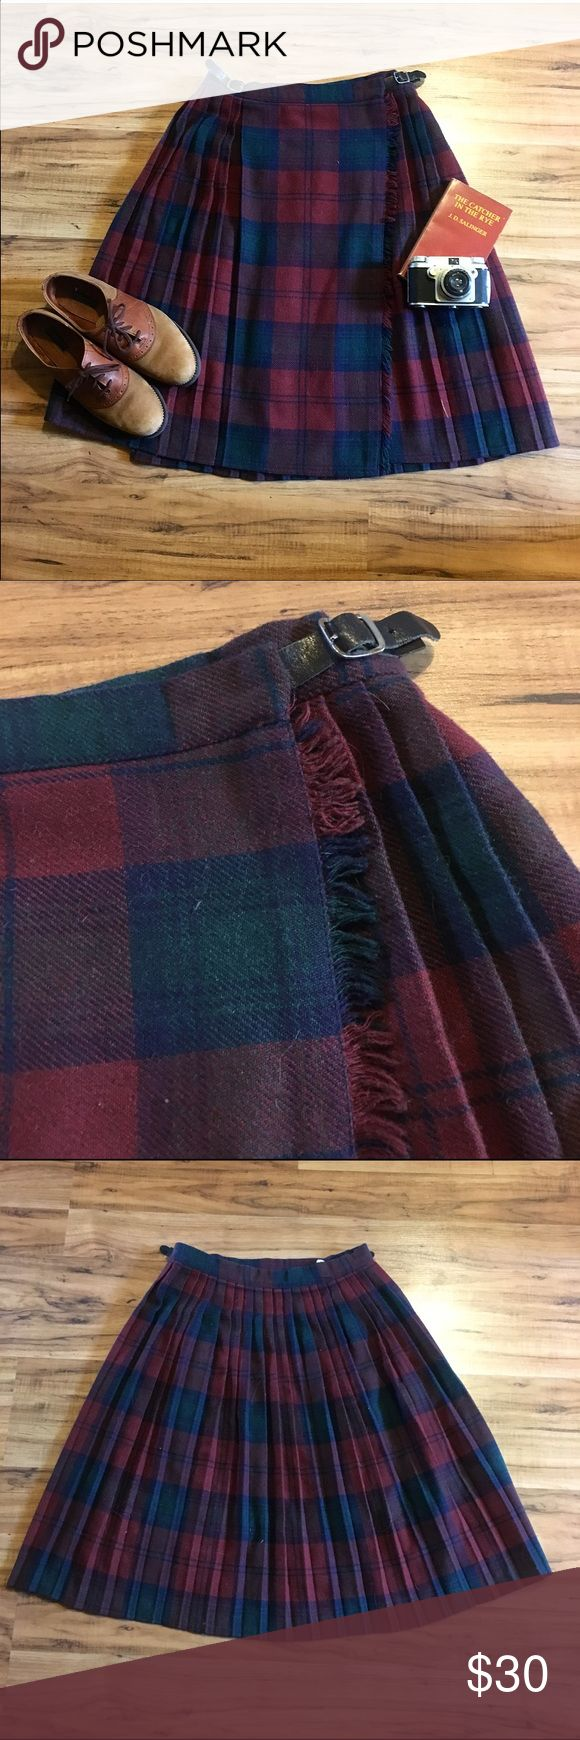 Vintage Tartan Wrap Skirt Amazing vintage Scottish wrap skirt, featuring leather adjustable buckles and perfect pleats front and back! Perfect shades of burgundy, blue and green. Looks awesome with fall colours (and of course black! ) Midi length. 20% wool. Lightly worn. NOT URBAN OUTFITTERS marked for exposure ((TAGS: 50s, 60s, retro, pinup, Hell Bunny, Stop Staring, Twin Peaks, Audrey Horne)) Urban Outfitters Skirts Midi